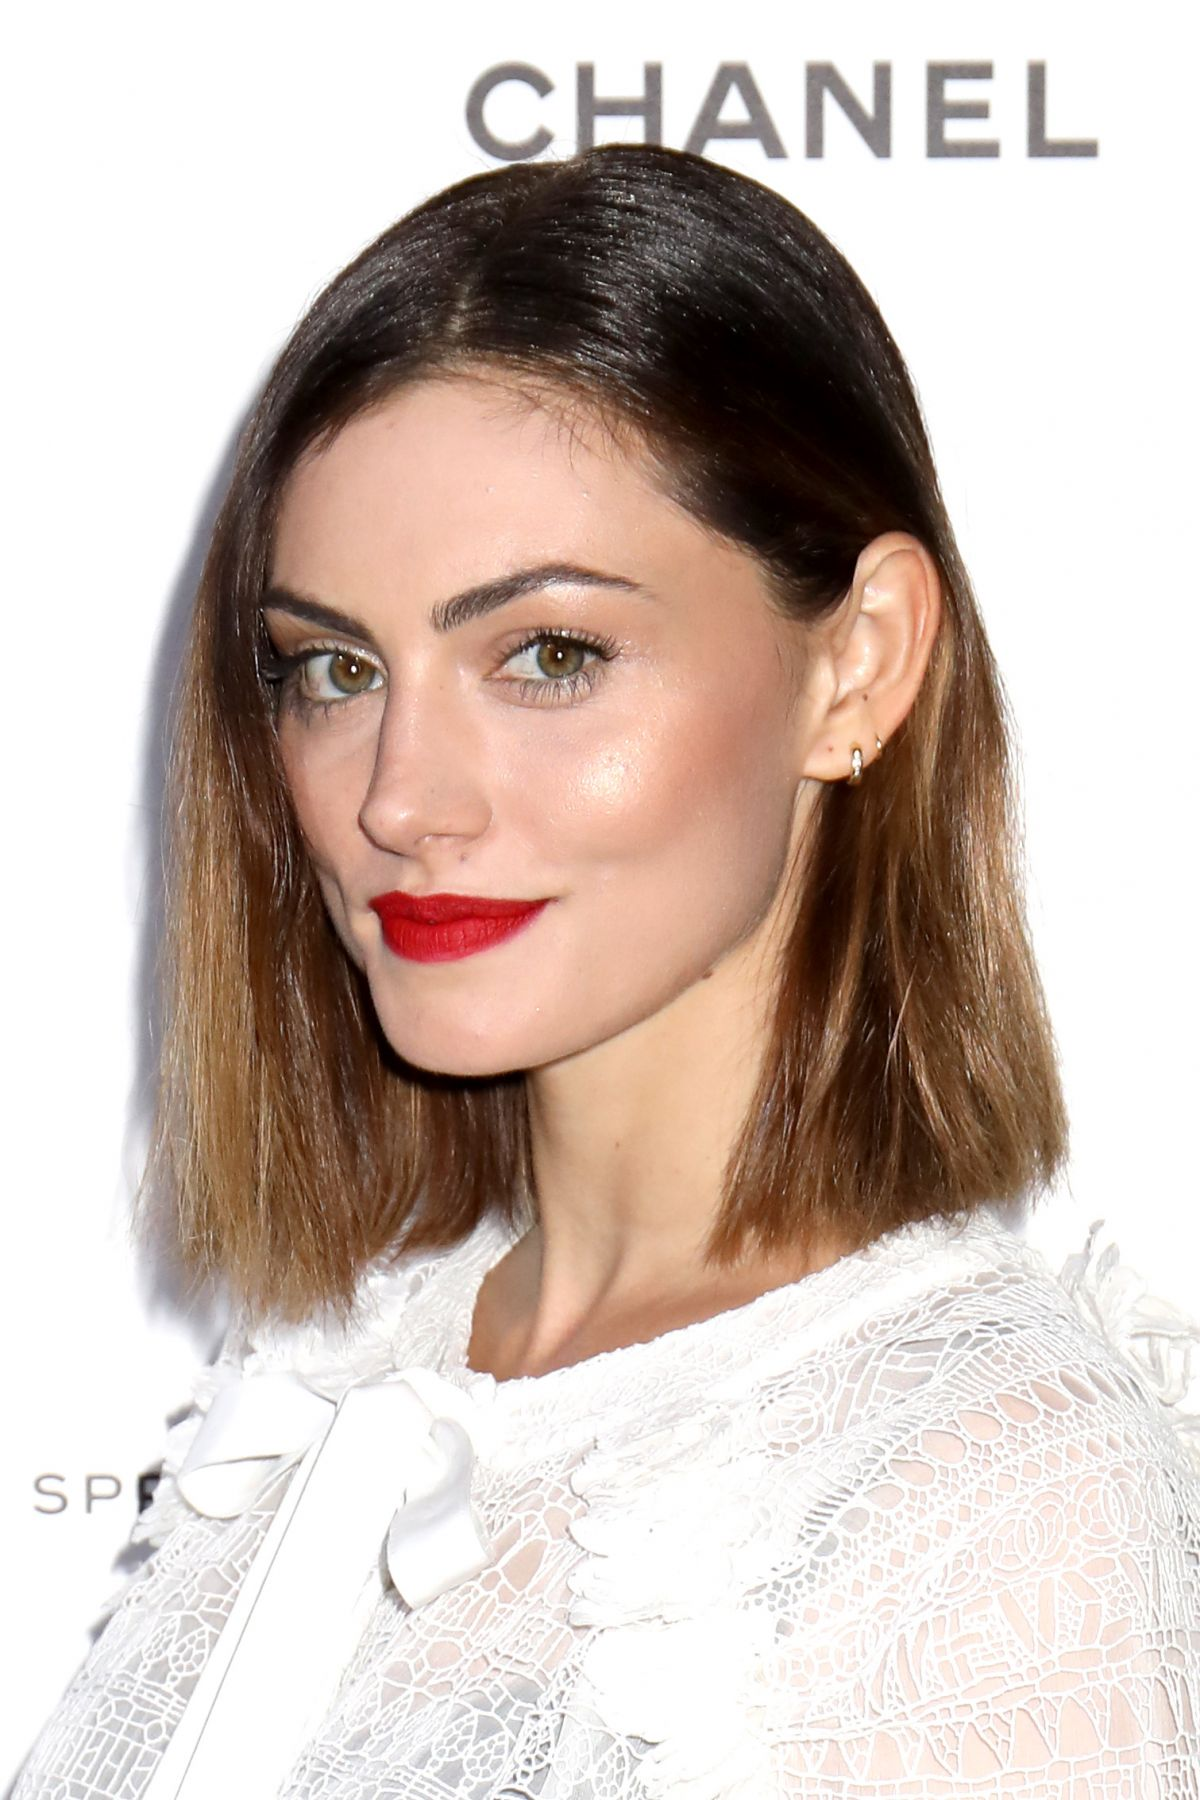 PHOEBE TONKIN At Lucia Picas Chanel SpringSummer 2018